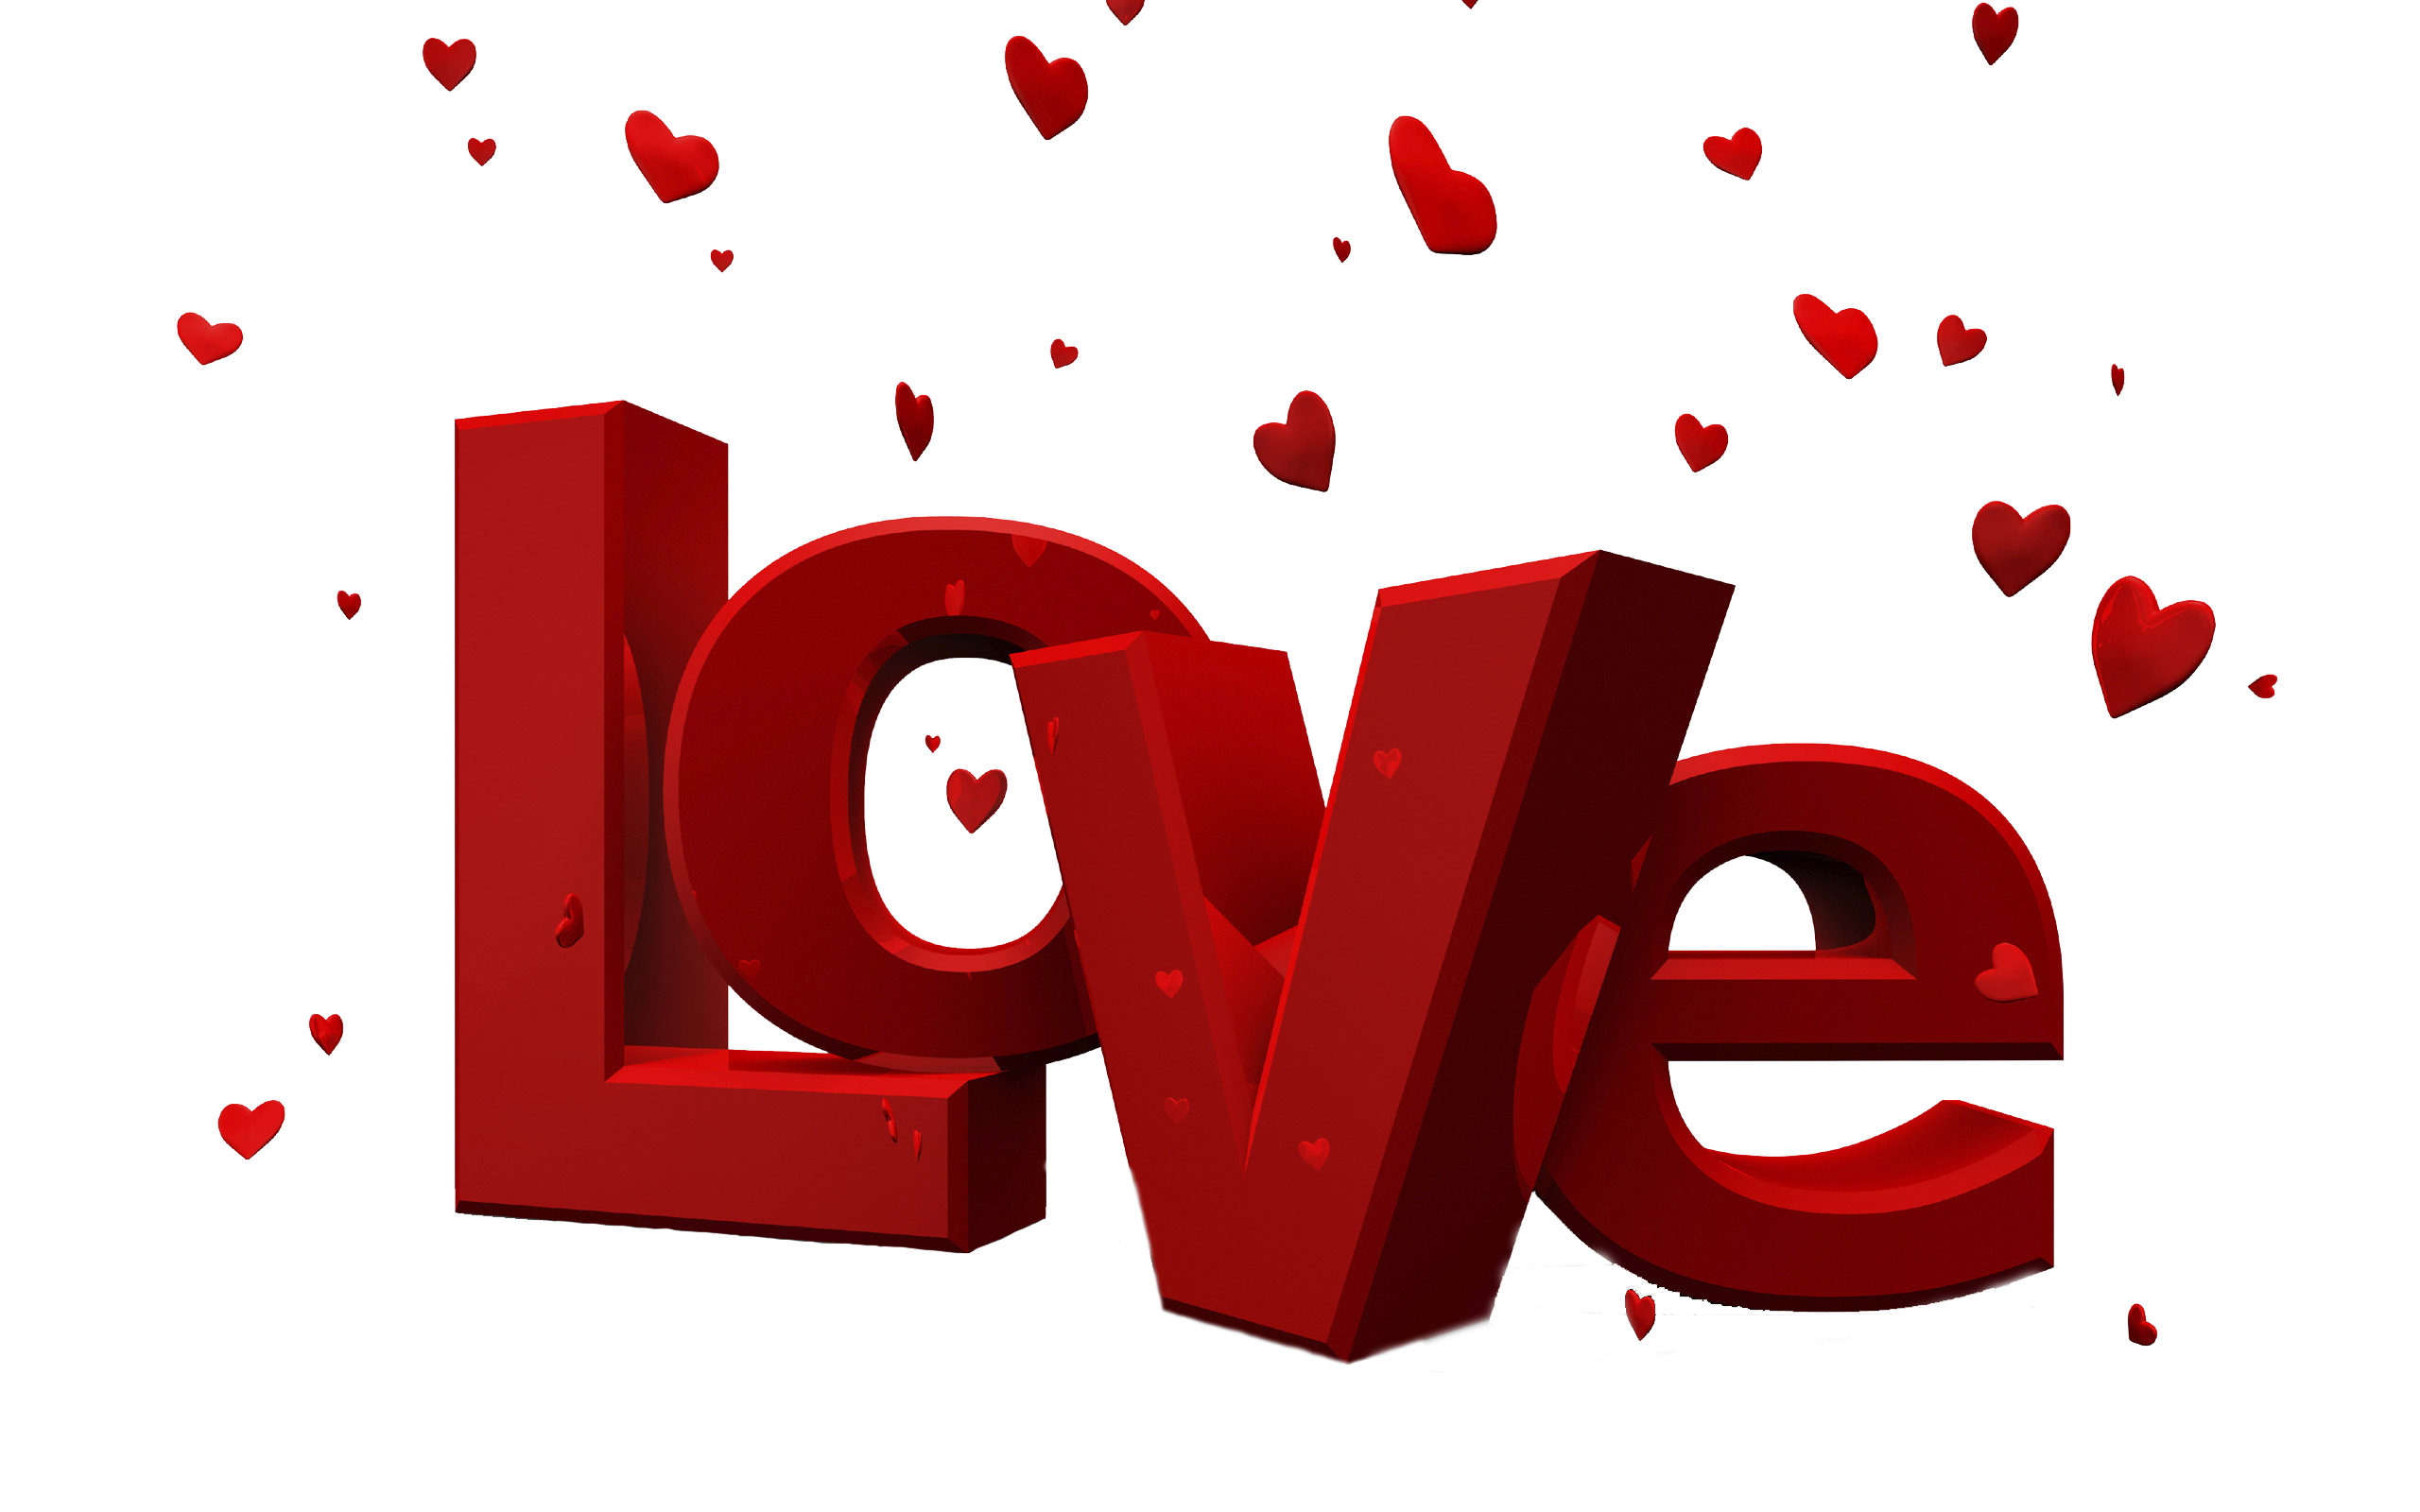 Love PNG - 4836